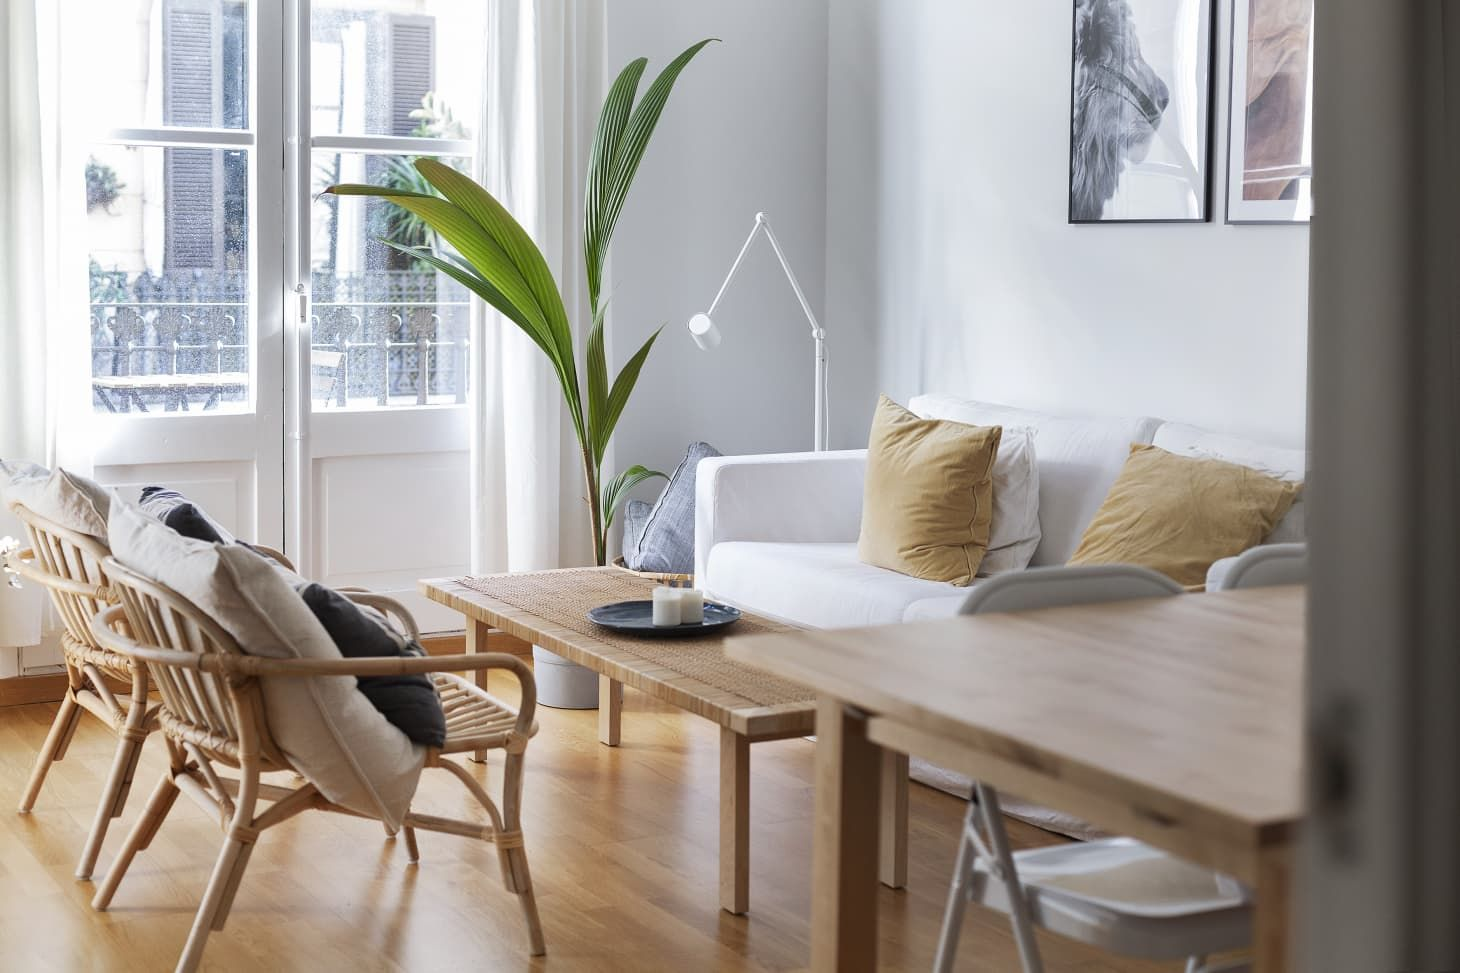 20 Of Our Favorite Modern Home Decor Stores That Aren T Ikea In 2020 Affordable Modern Furniture Home Decor Home Decor Store